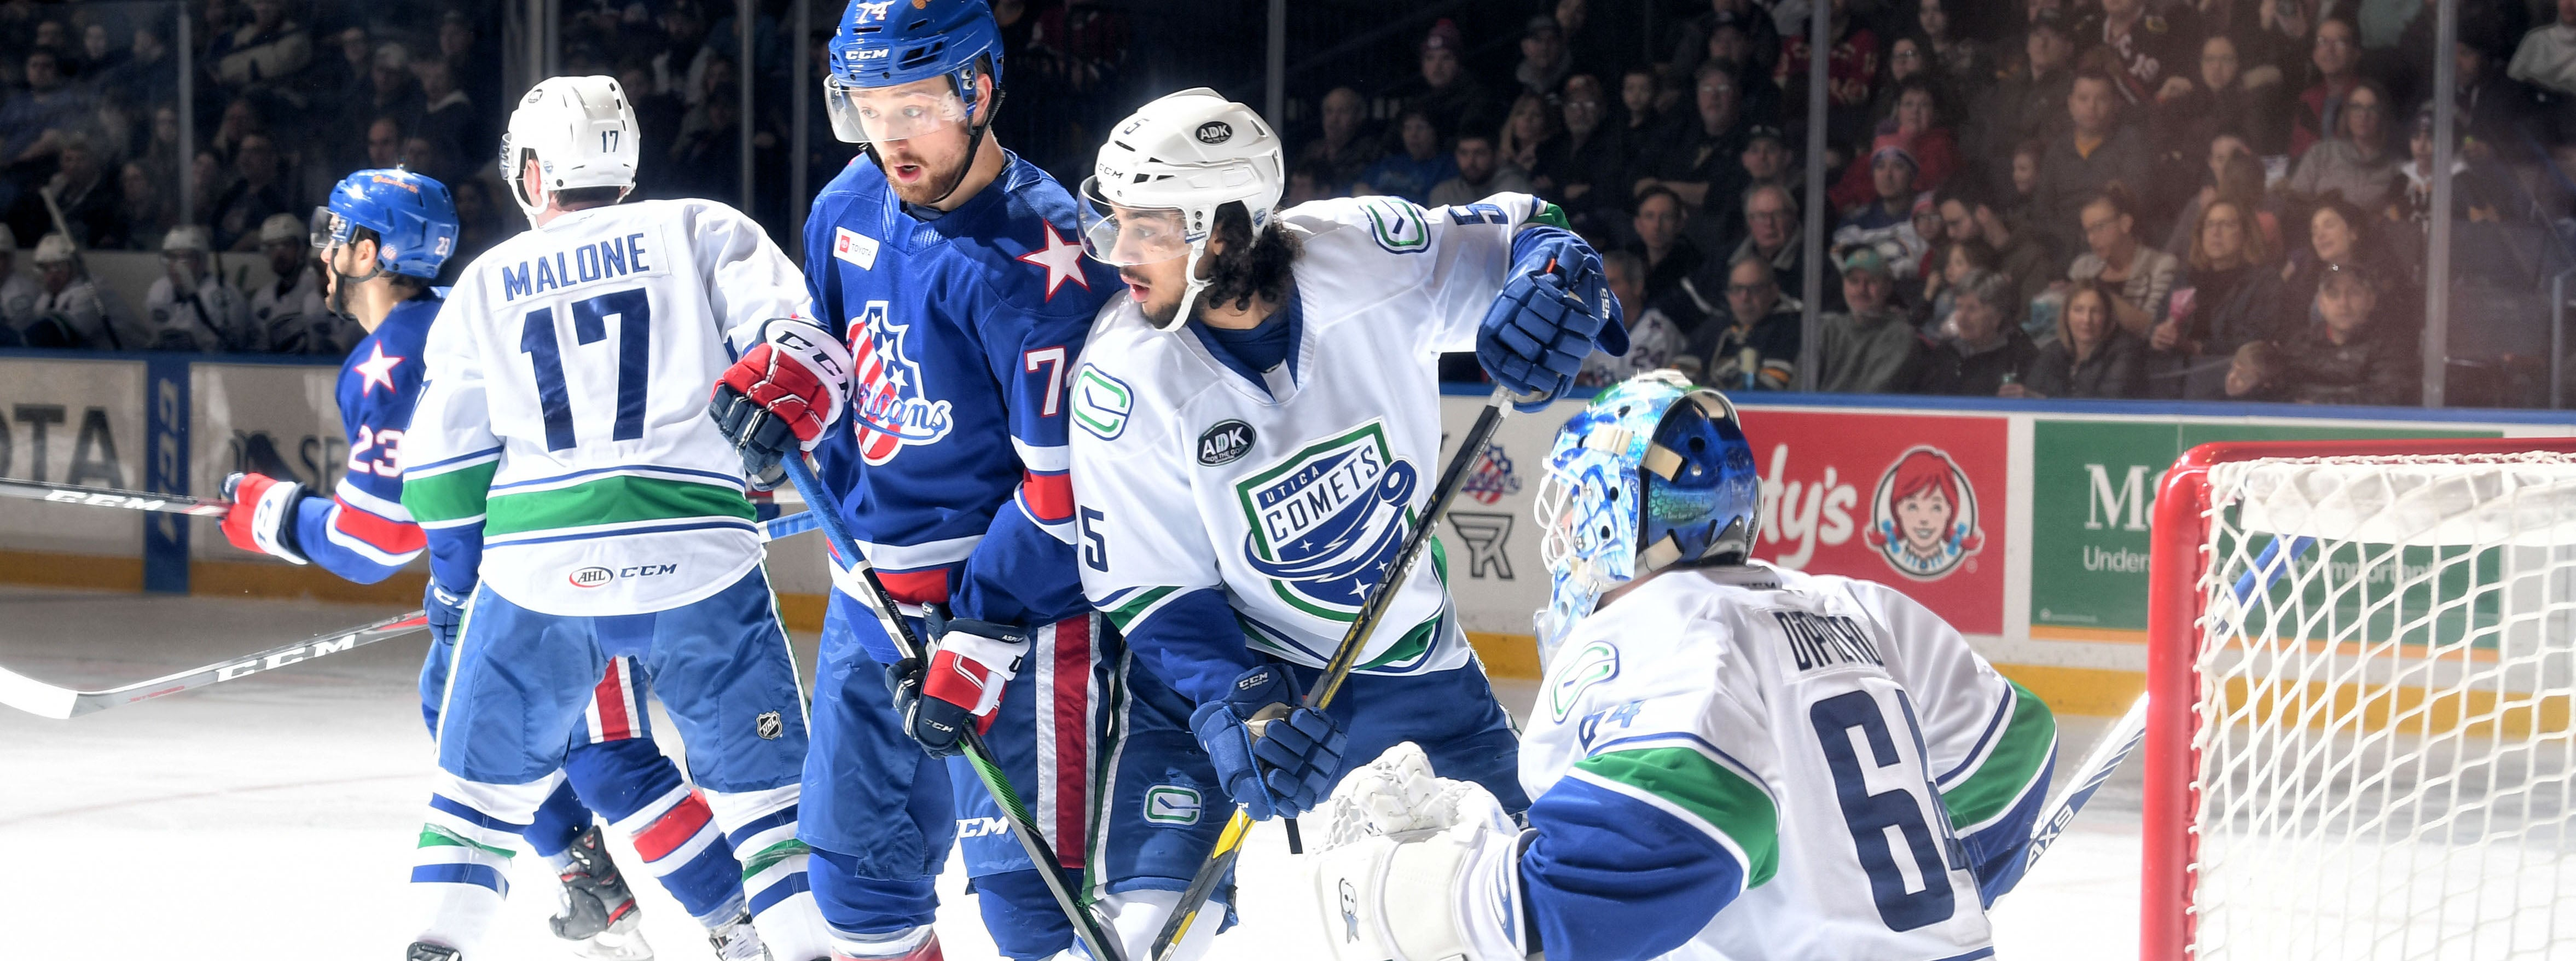 COMETS DROP DIVISIONAL TILT IN ROCHESTER